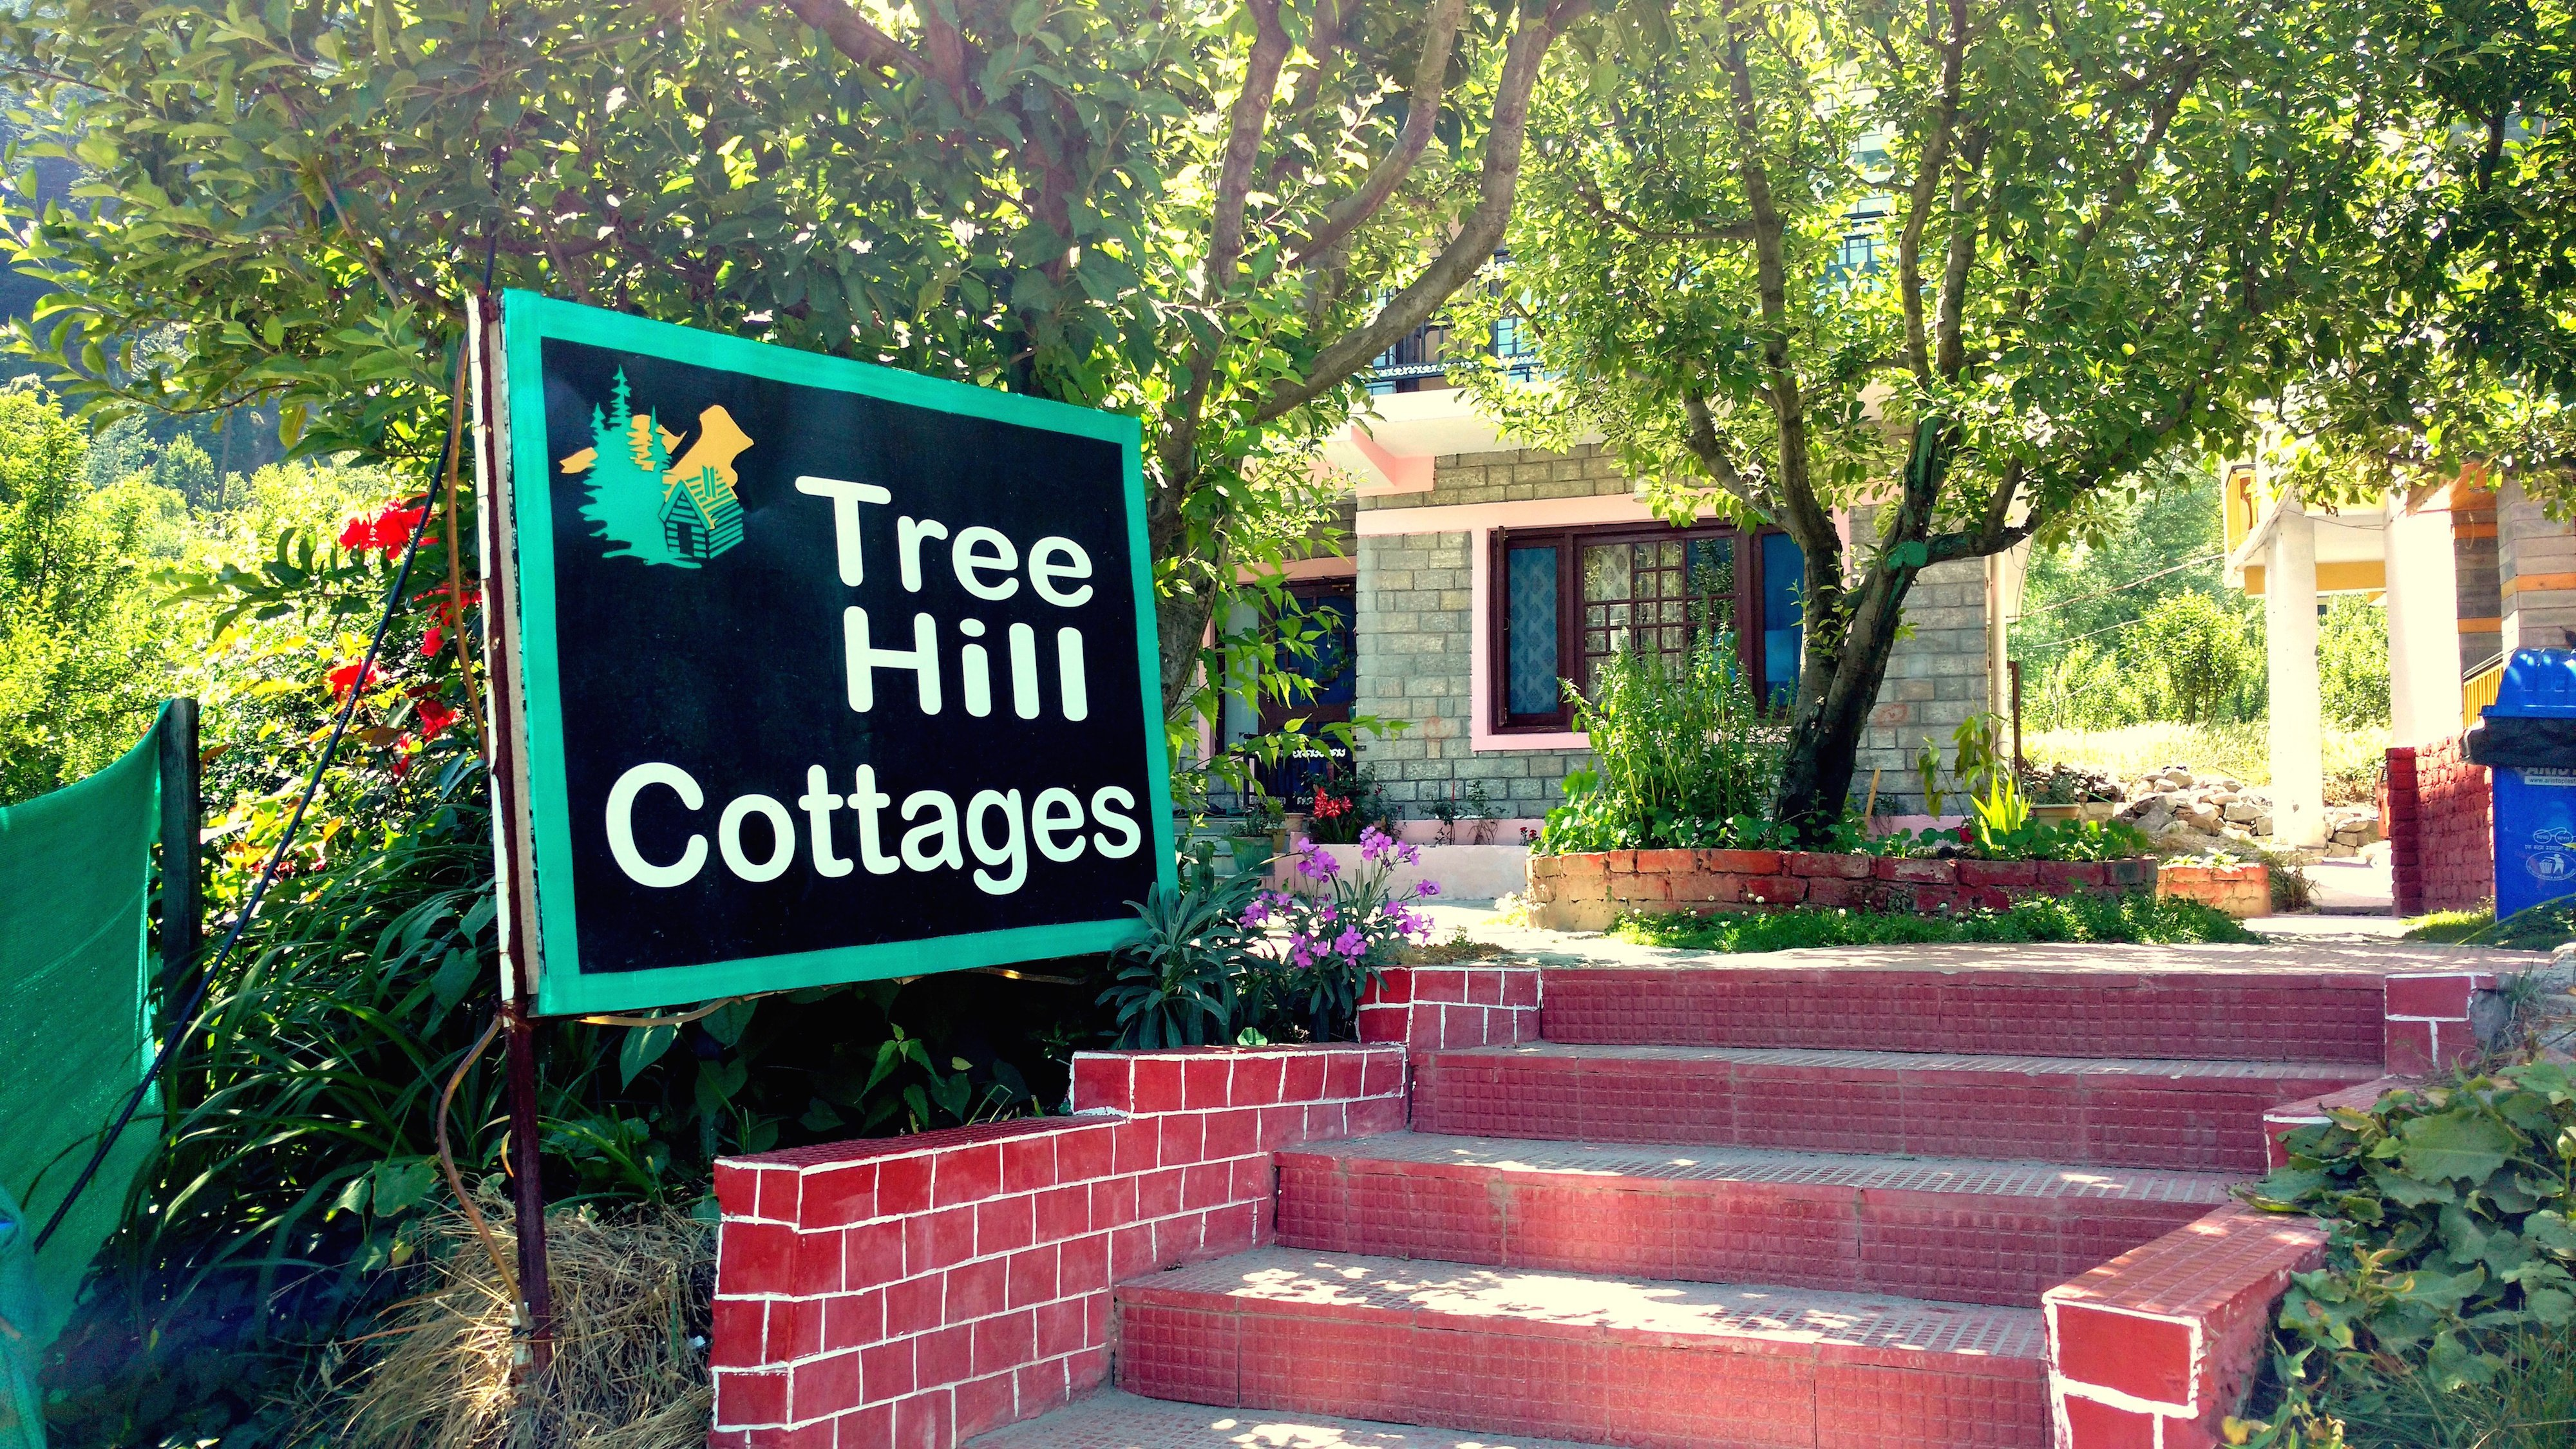 Tree Hill Cottages